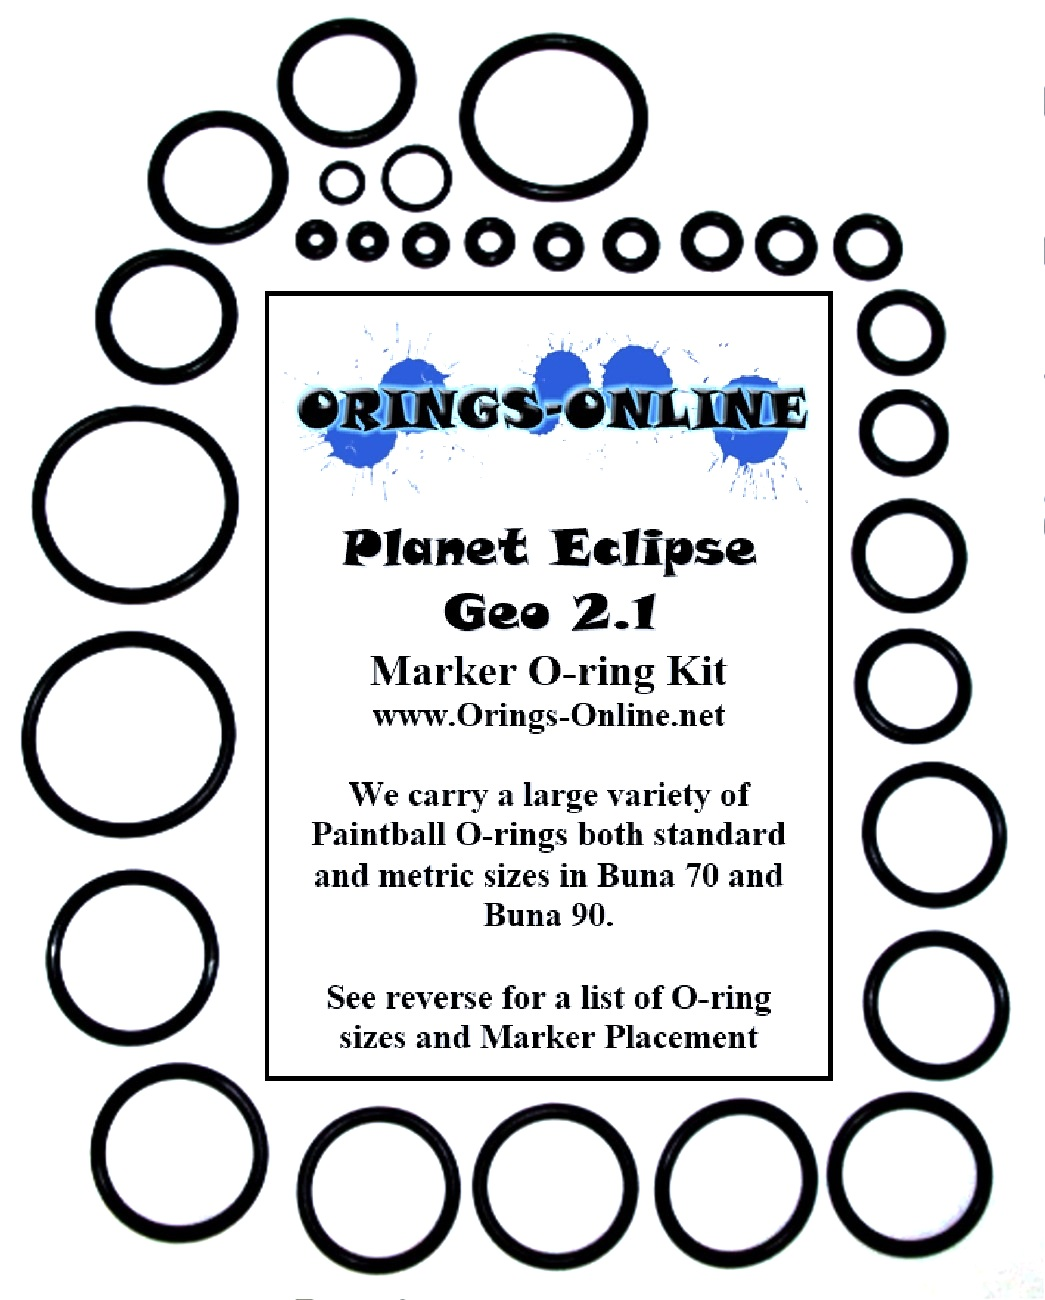 Planet Eclipse Geo 2.1 Marker O-ring Kit